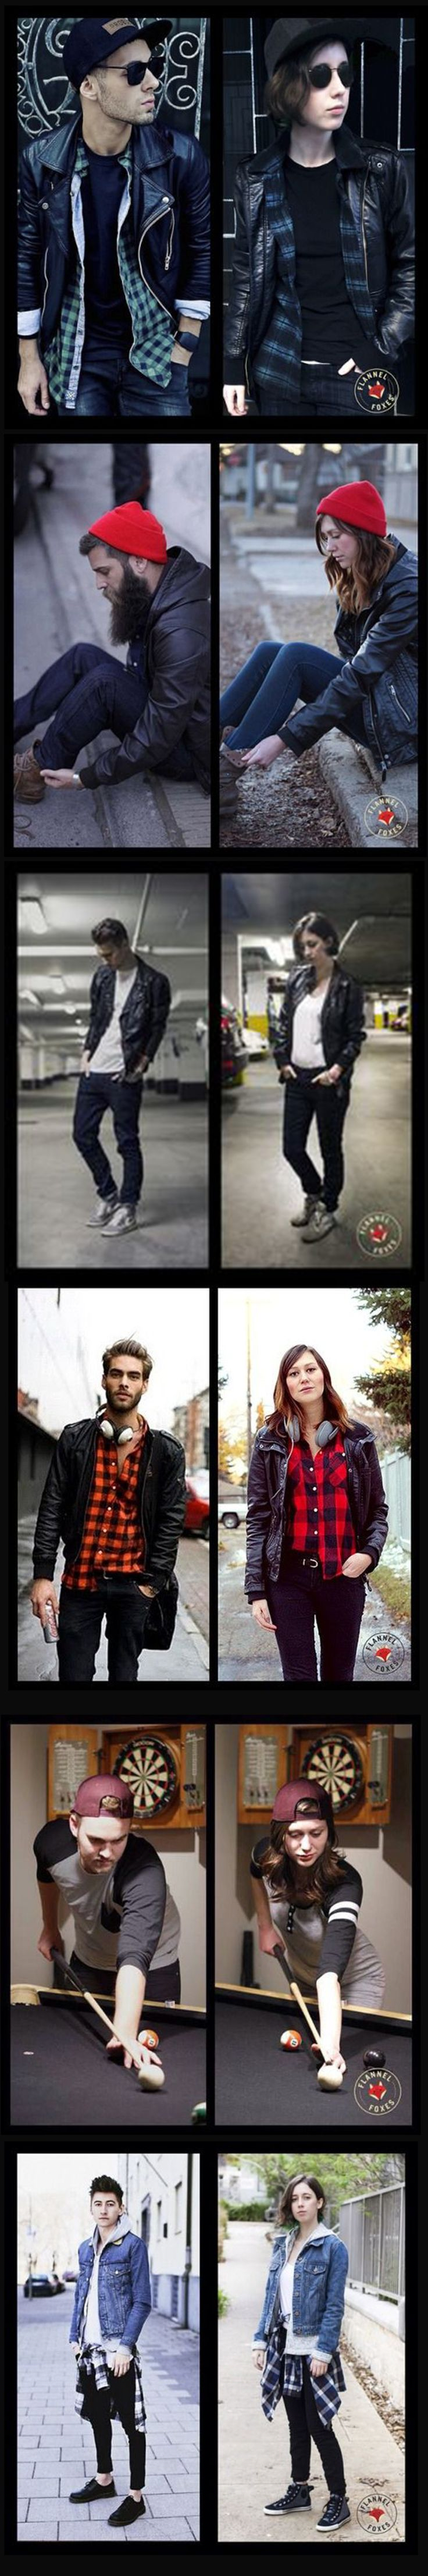 Flannel Foxes is a Tomboy Fashion Blog that takes inspiration from Men's Fashion Outfits and Re creates for Women  // Tomboy Fashion Blog // www.flannelfoxes.com